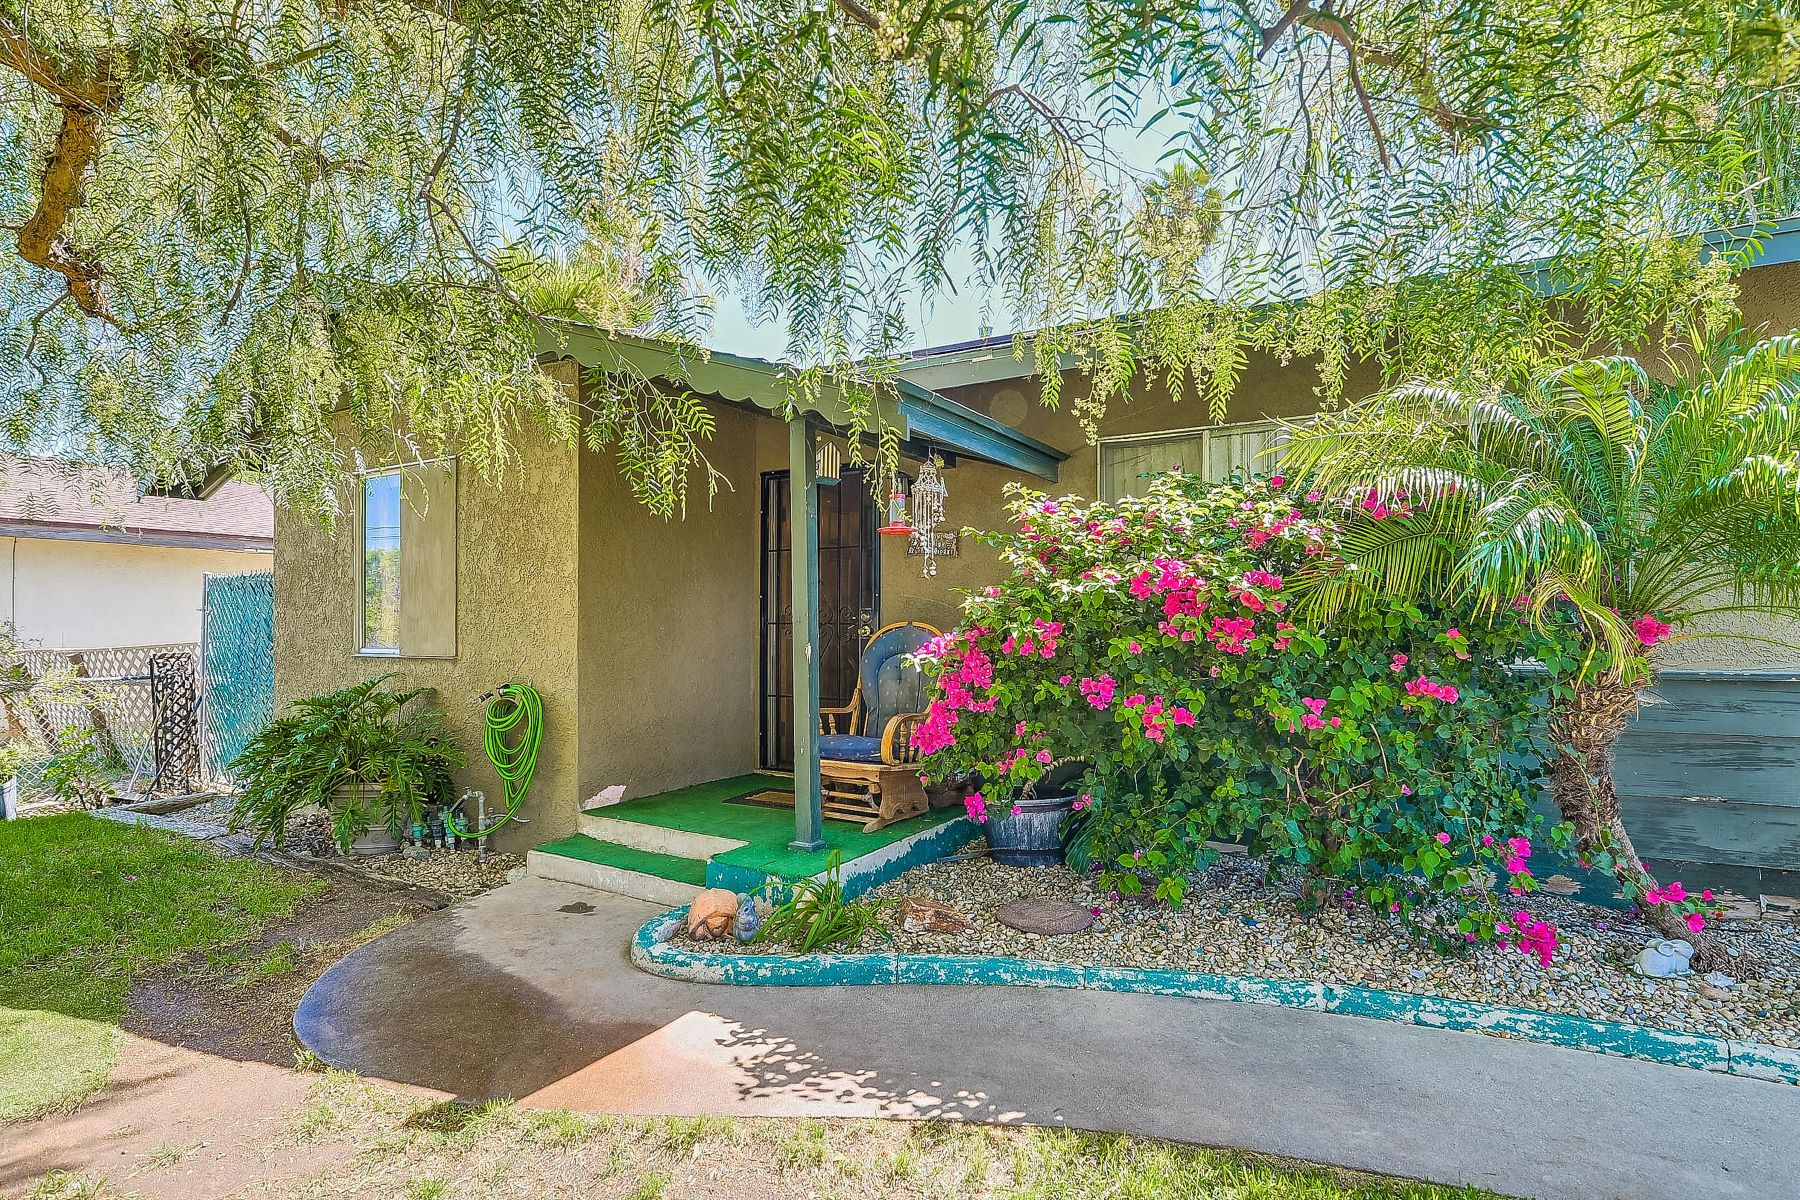 Single Family Homes for Active at Tranquil Living 480 N Franklin Street Hemet, California 92543 United States